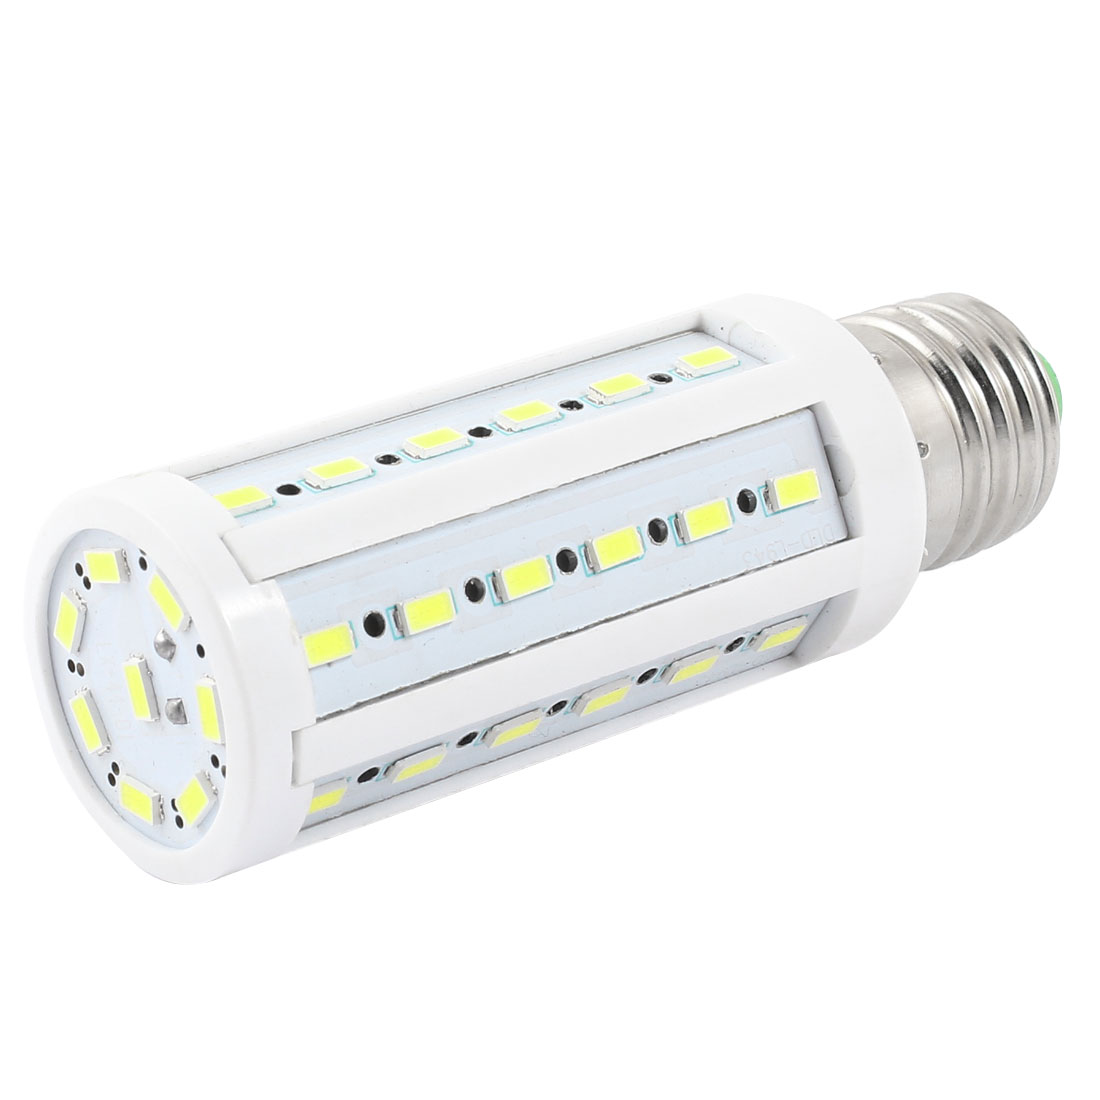 AC 110/220V 880LM E27 Socket Pure White 44 SMD 5630 LEDs Light Lamp Bulb 11W